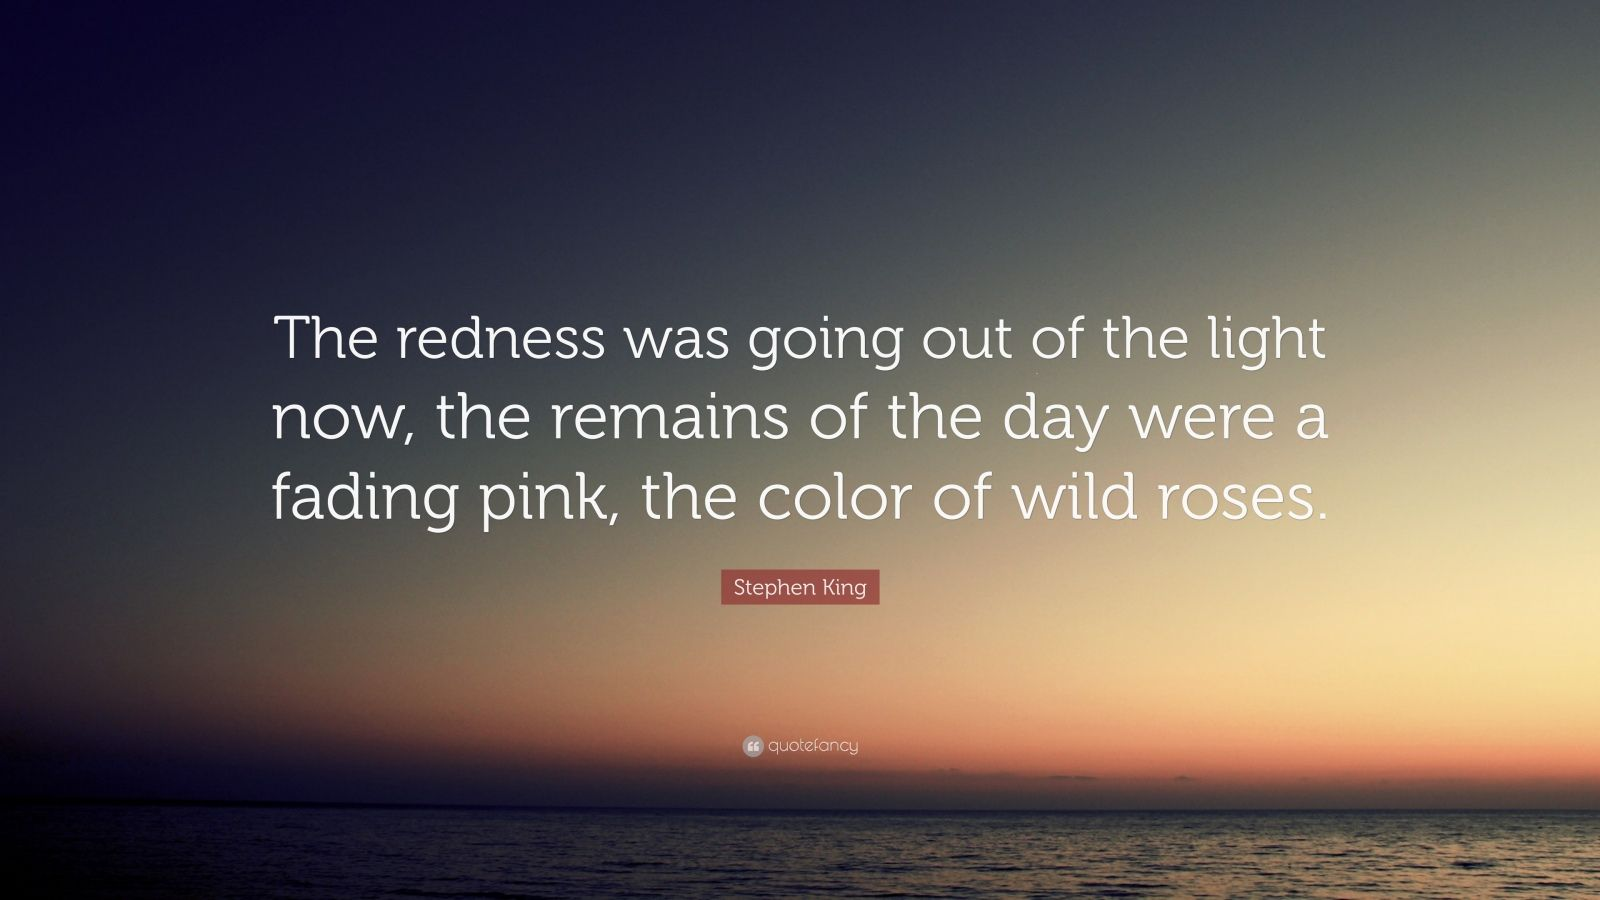 """Stephen King Quote: """"The redness was going out of the light now, the remains of the day were a fading pink, the color of wild roses."""""""